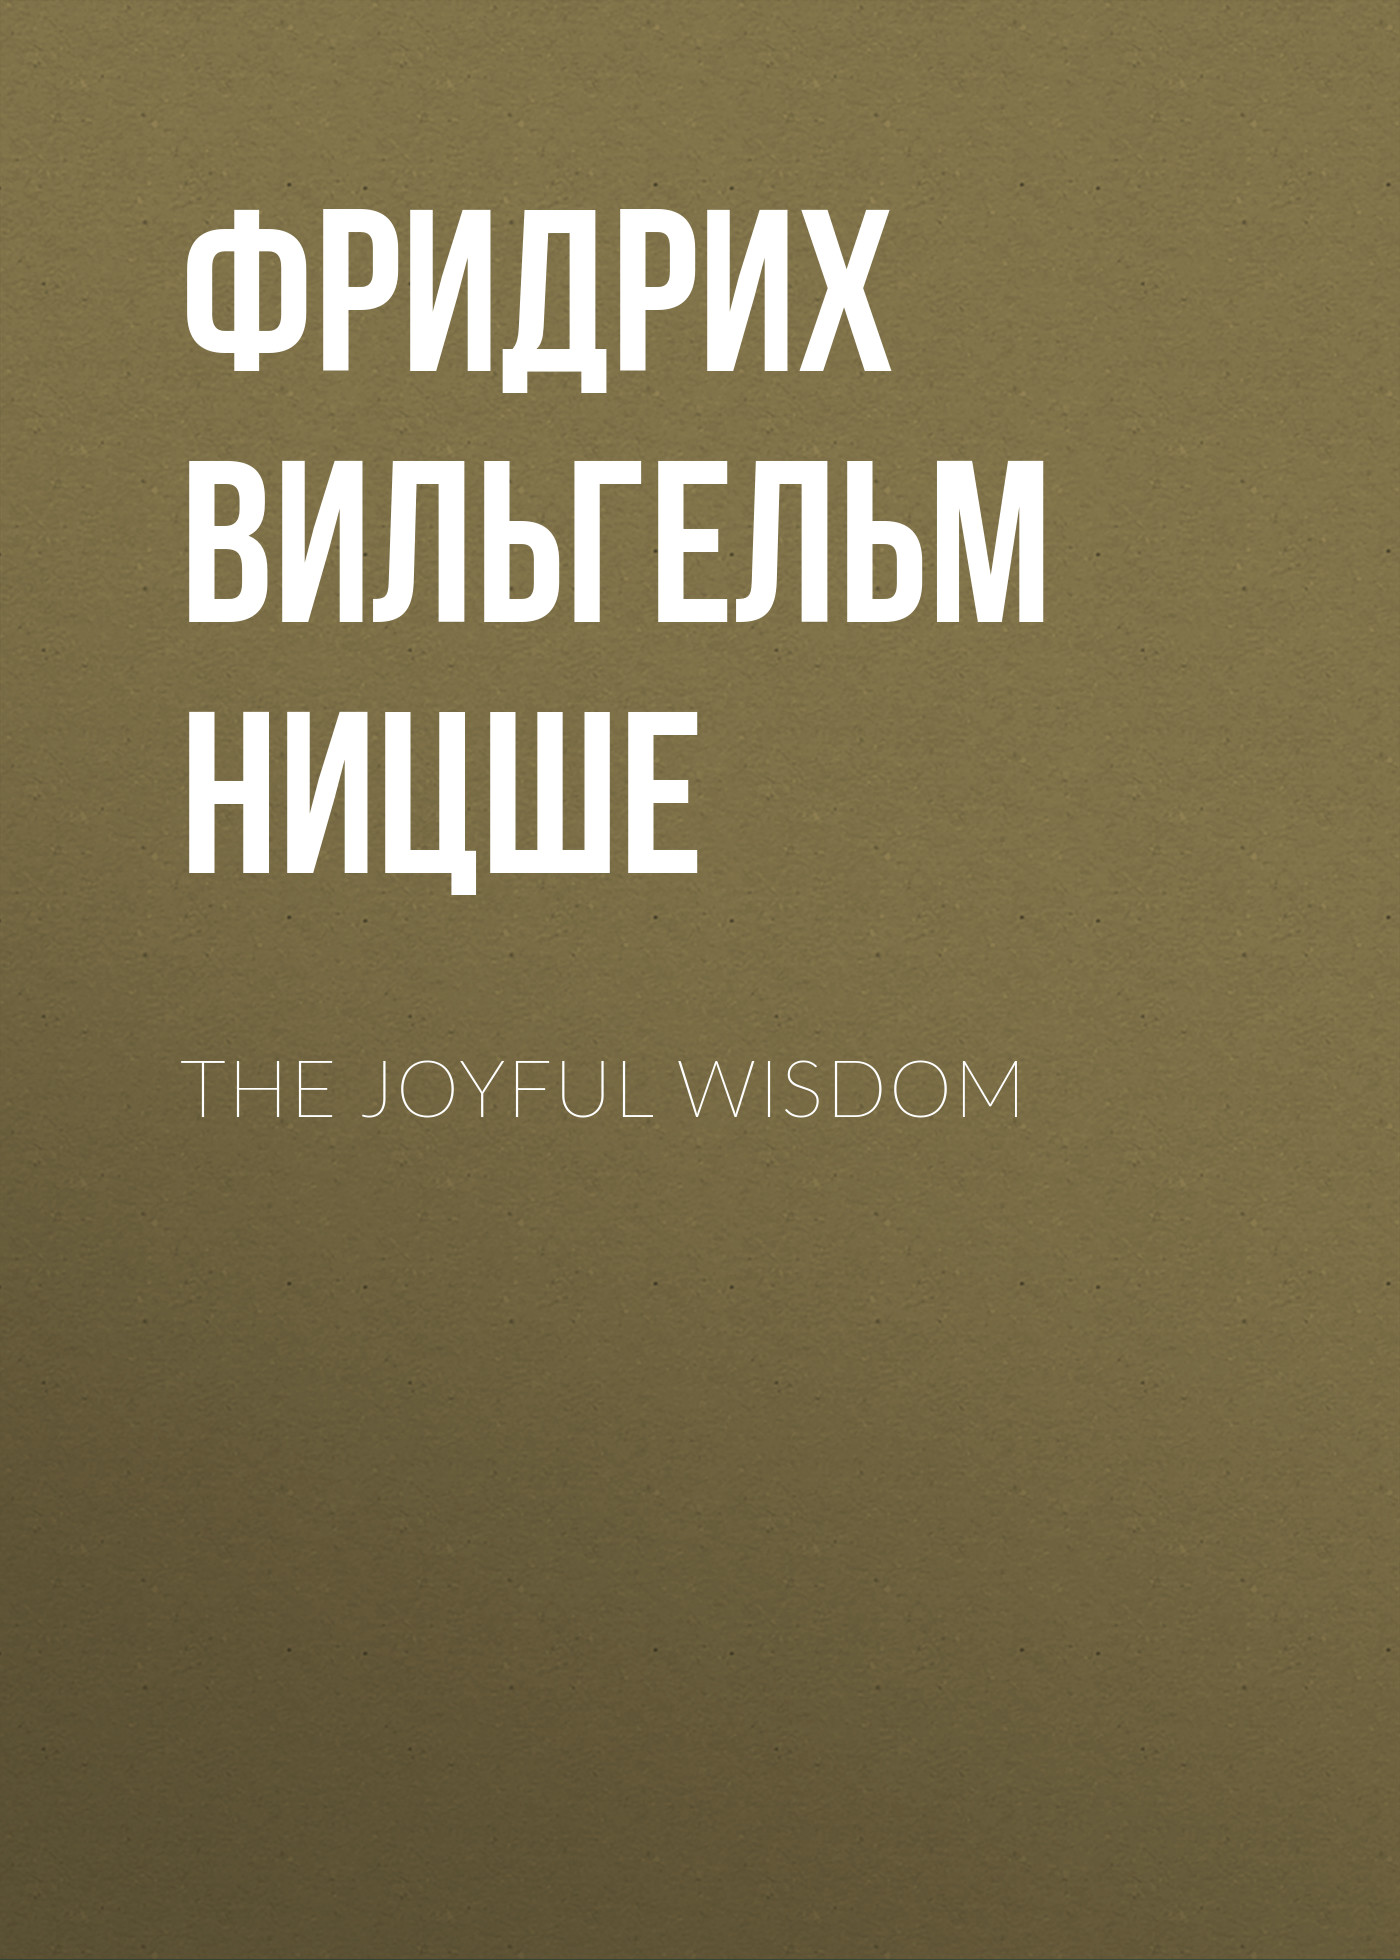 Фридрих Вильгельм Ницше The Joyful Wisdom journey joyful